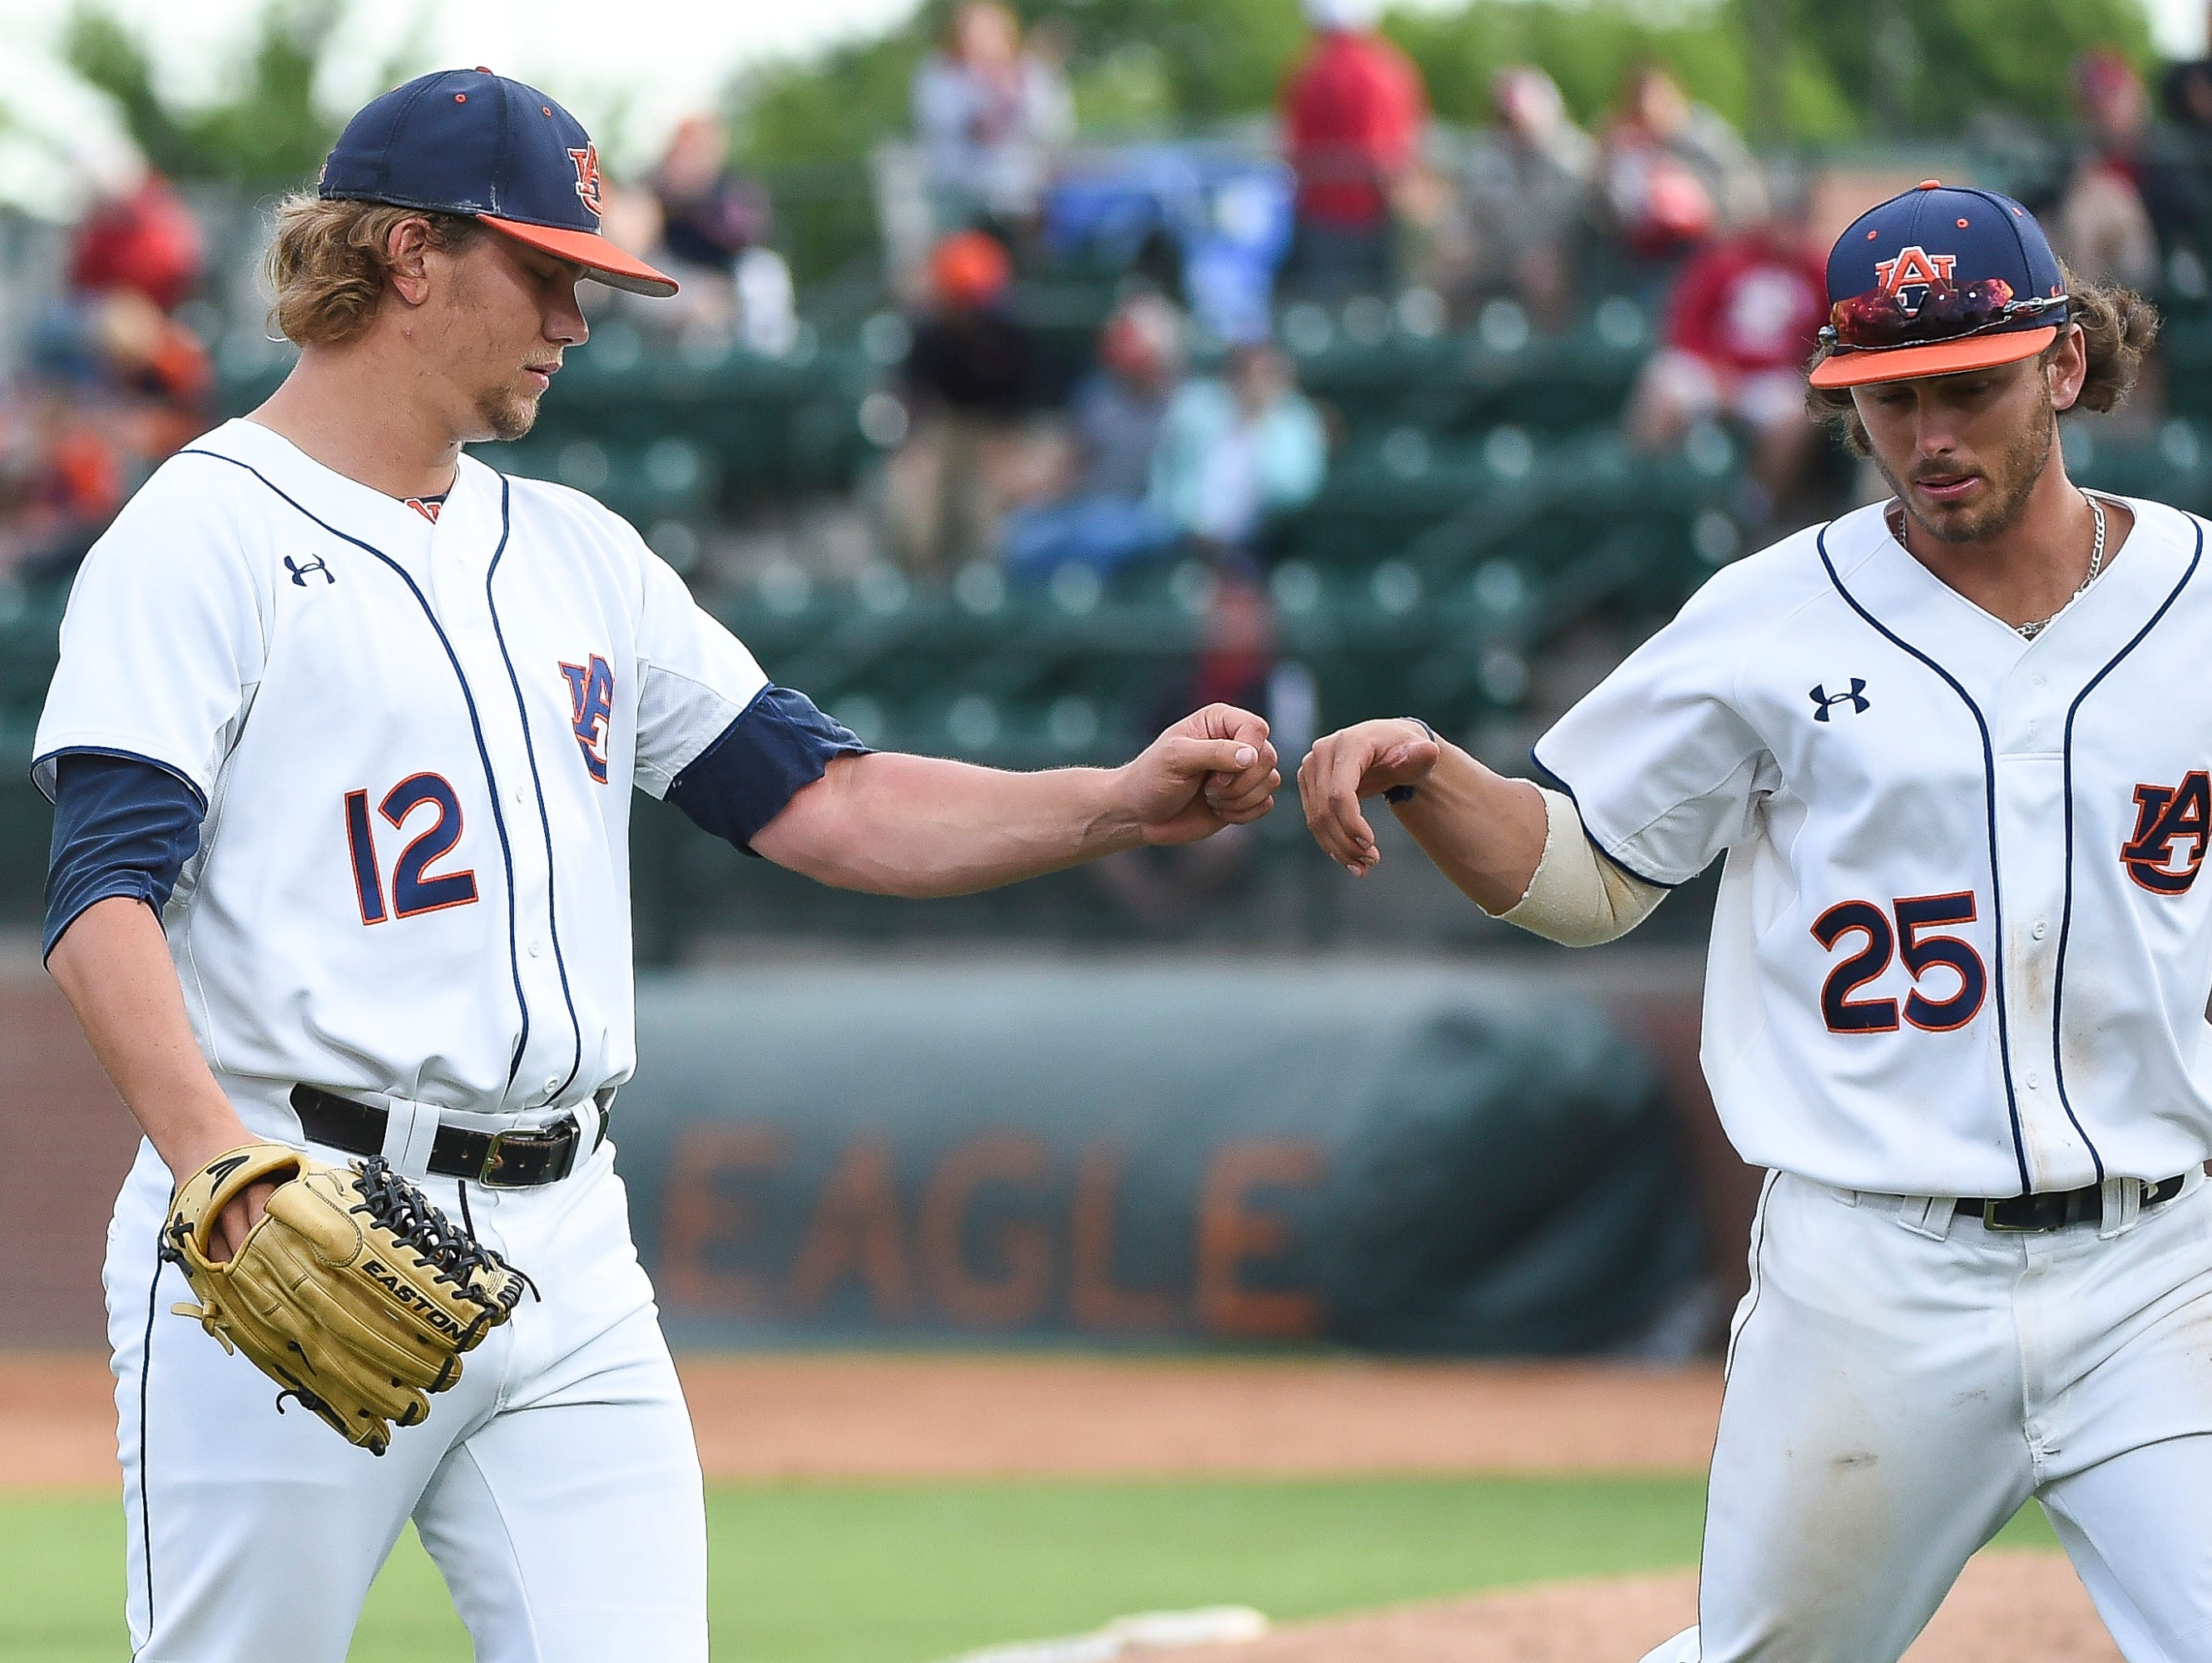 Auburn pitcher Andrew Mitchell gets the win in a 11-6 victory over No. 14 Arkansas after working the final five innings Sunday.